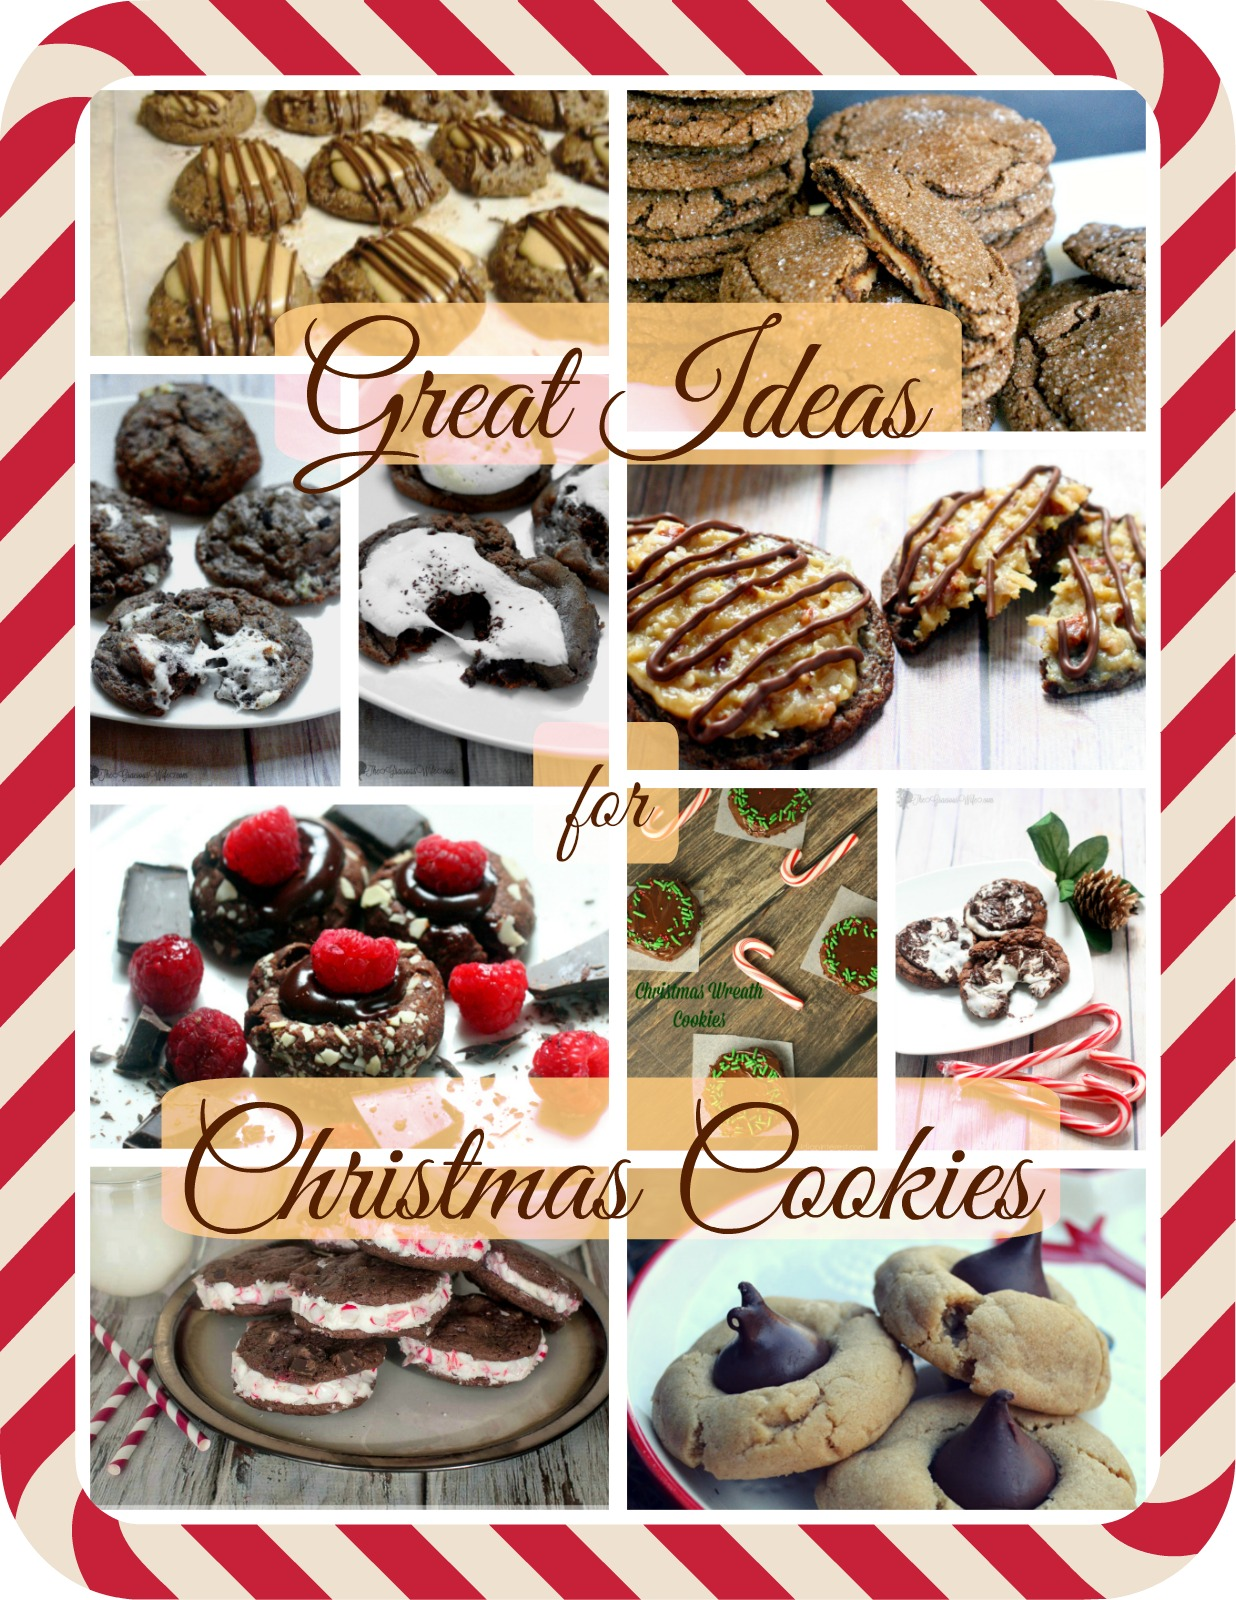 Great Ideas for Christmas Cookies:  A Great Idea Thursdays round up of my favorite Christmas cookies